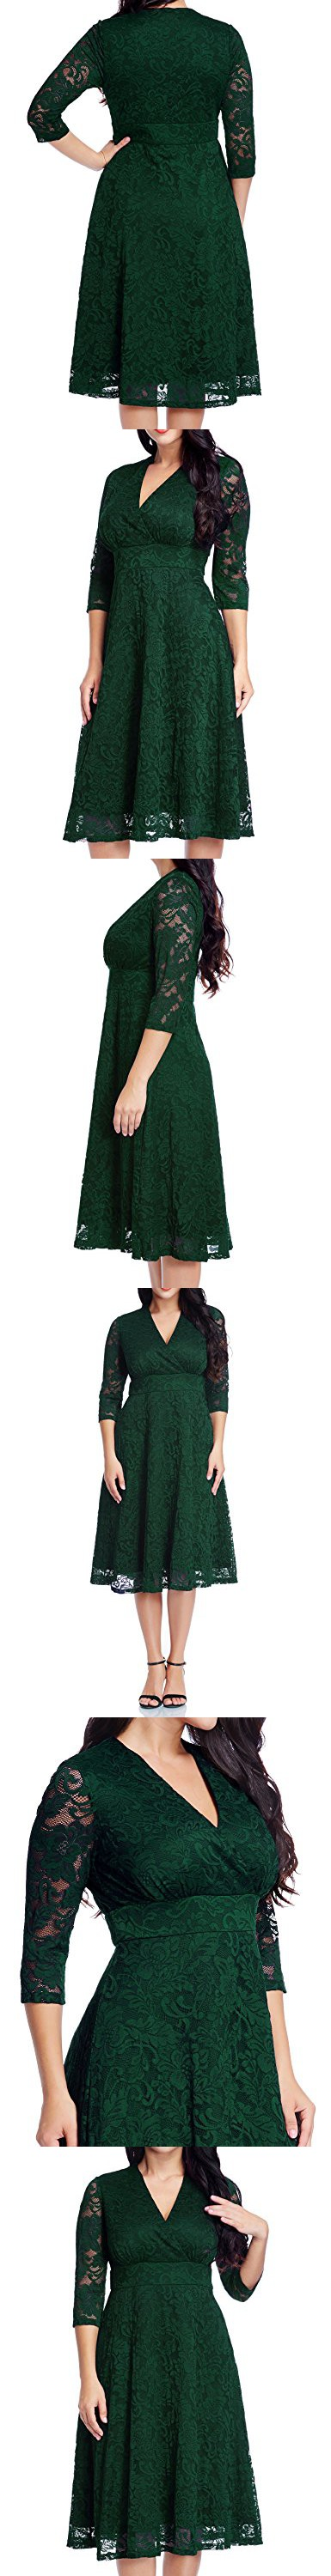 Women's Lace Plus Size Mother of the Bride Skater Dress Bridal Wedding Party Green 22W